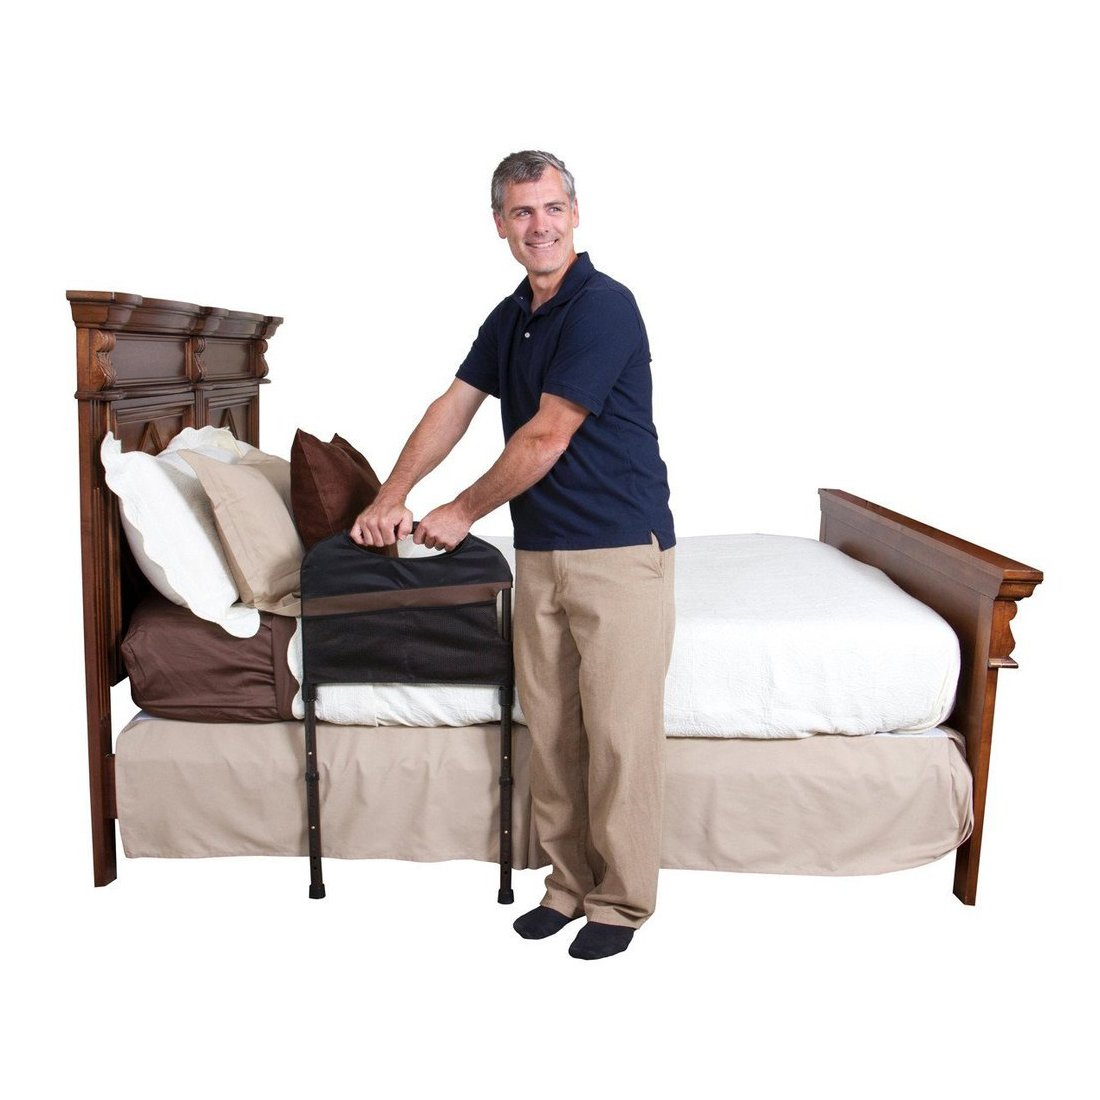 Stander USA Stable Bed Rail for Elderly Persons